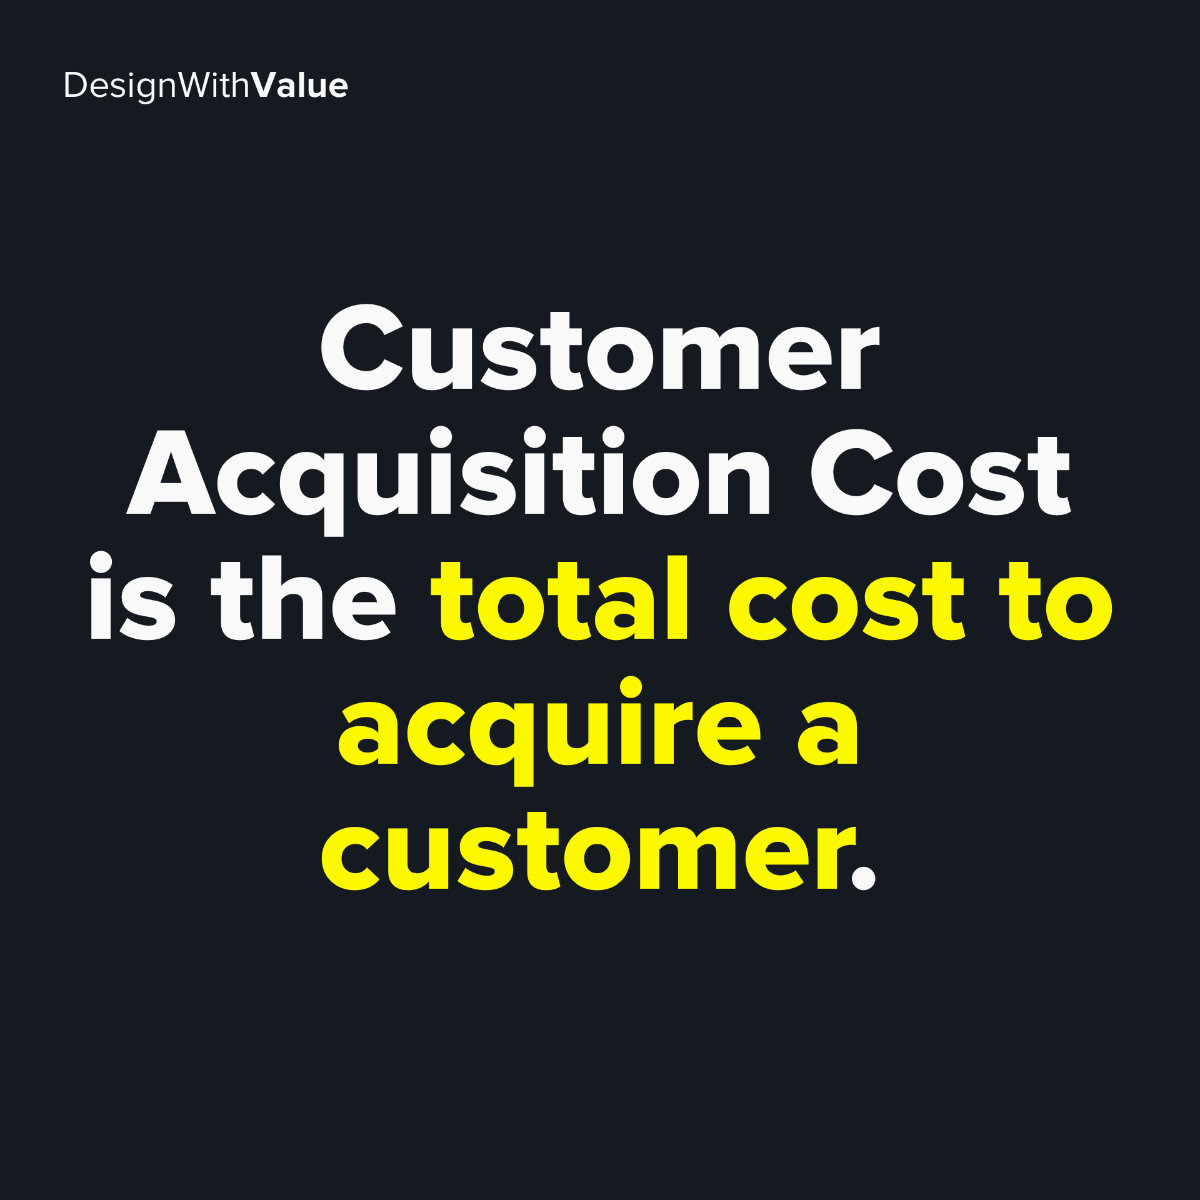 Customer acquisition cost is the total cost to acquire a customer